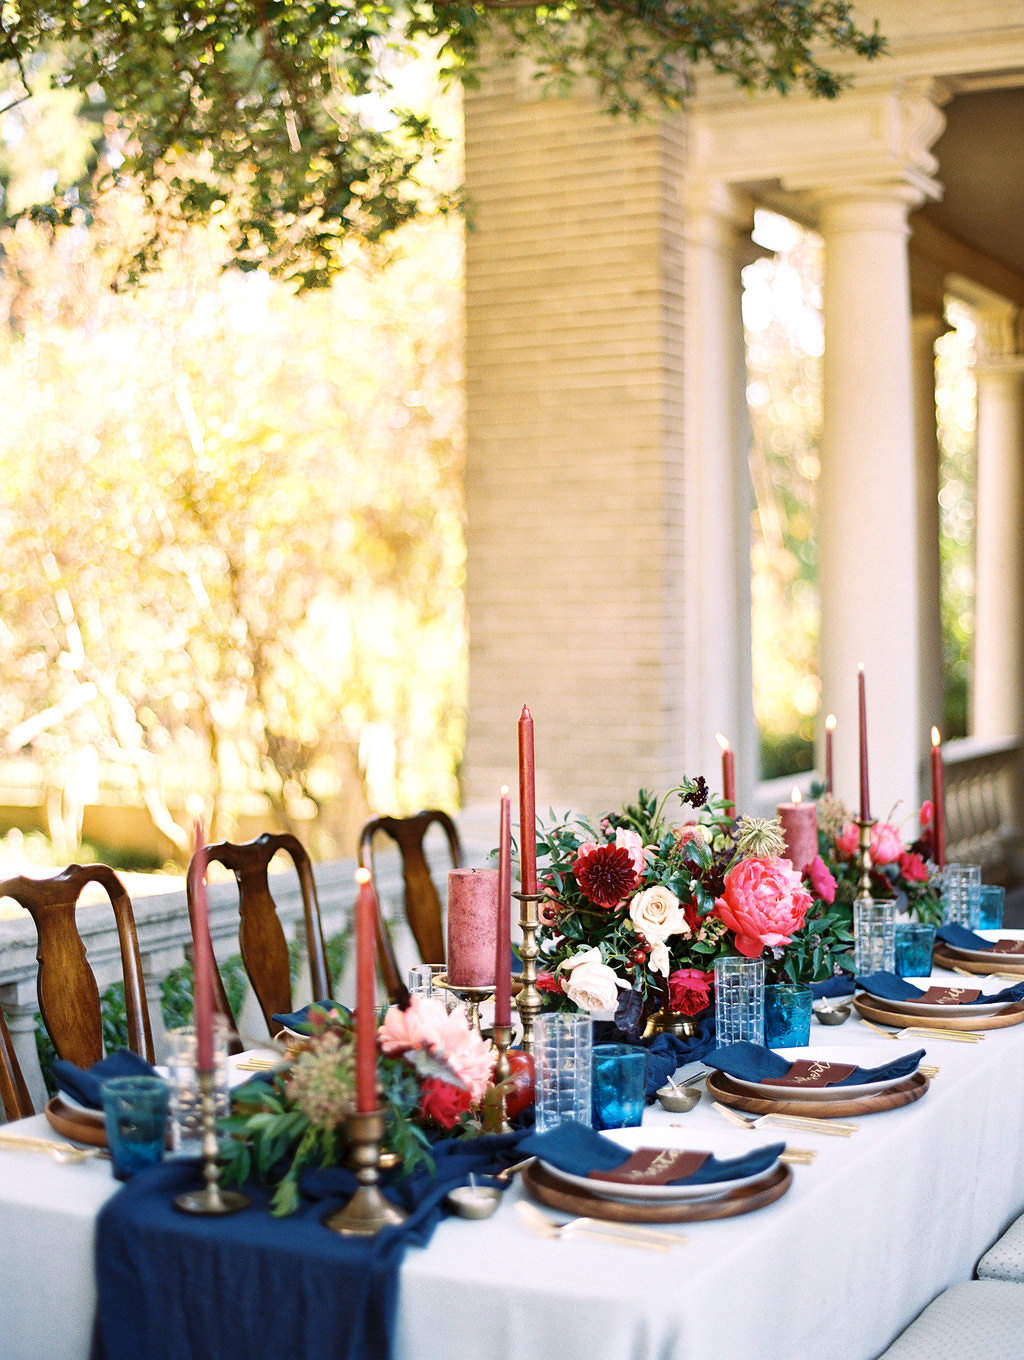 yolanda cedric wedding table